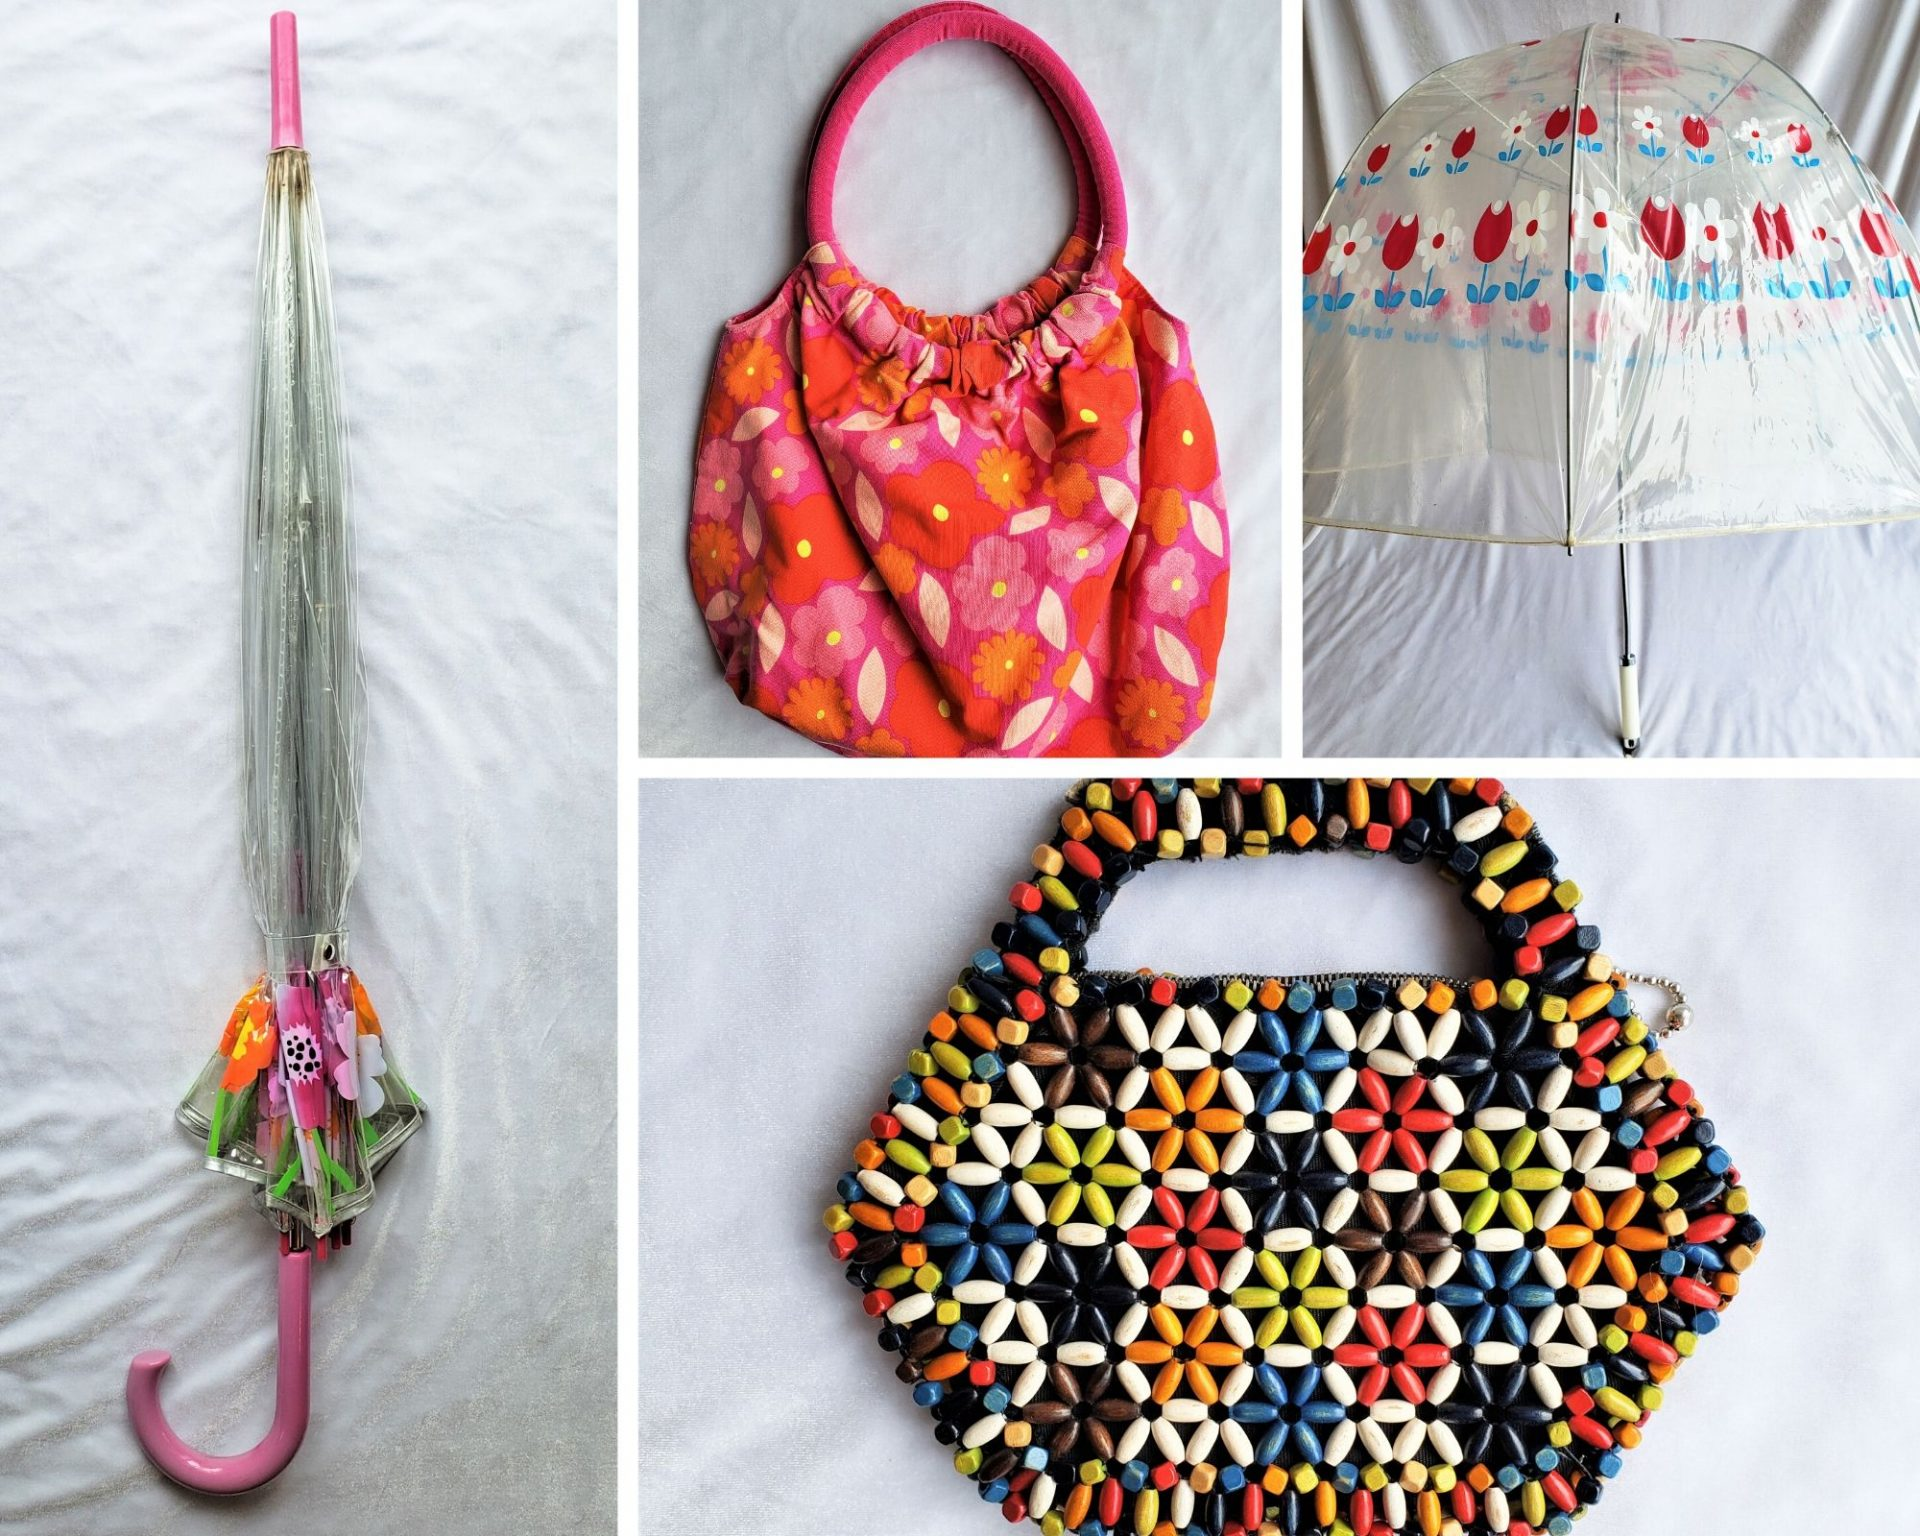 1960s Purse and Umbrella Collage 2